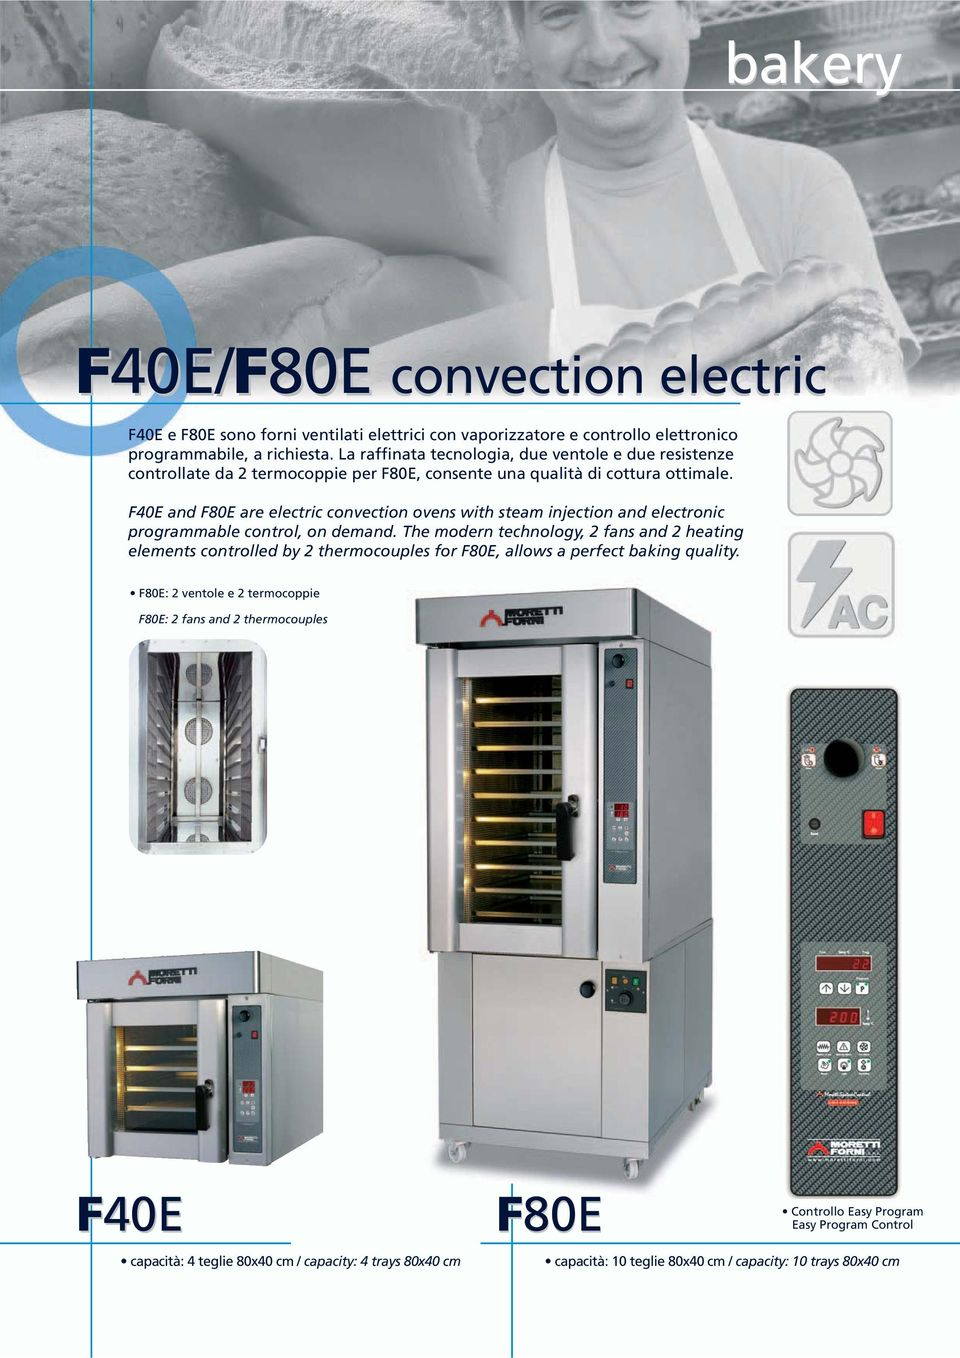 F40E and F80E are electric convection ovens with steam injection and electronic programmable control, on demand.